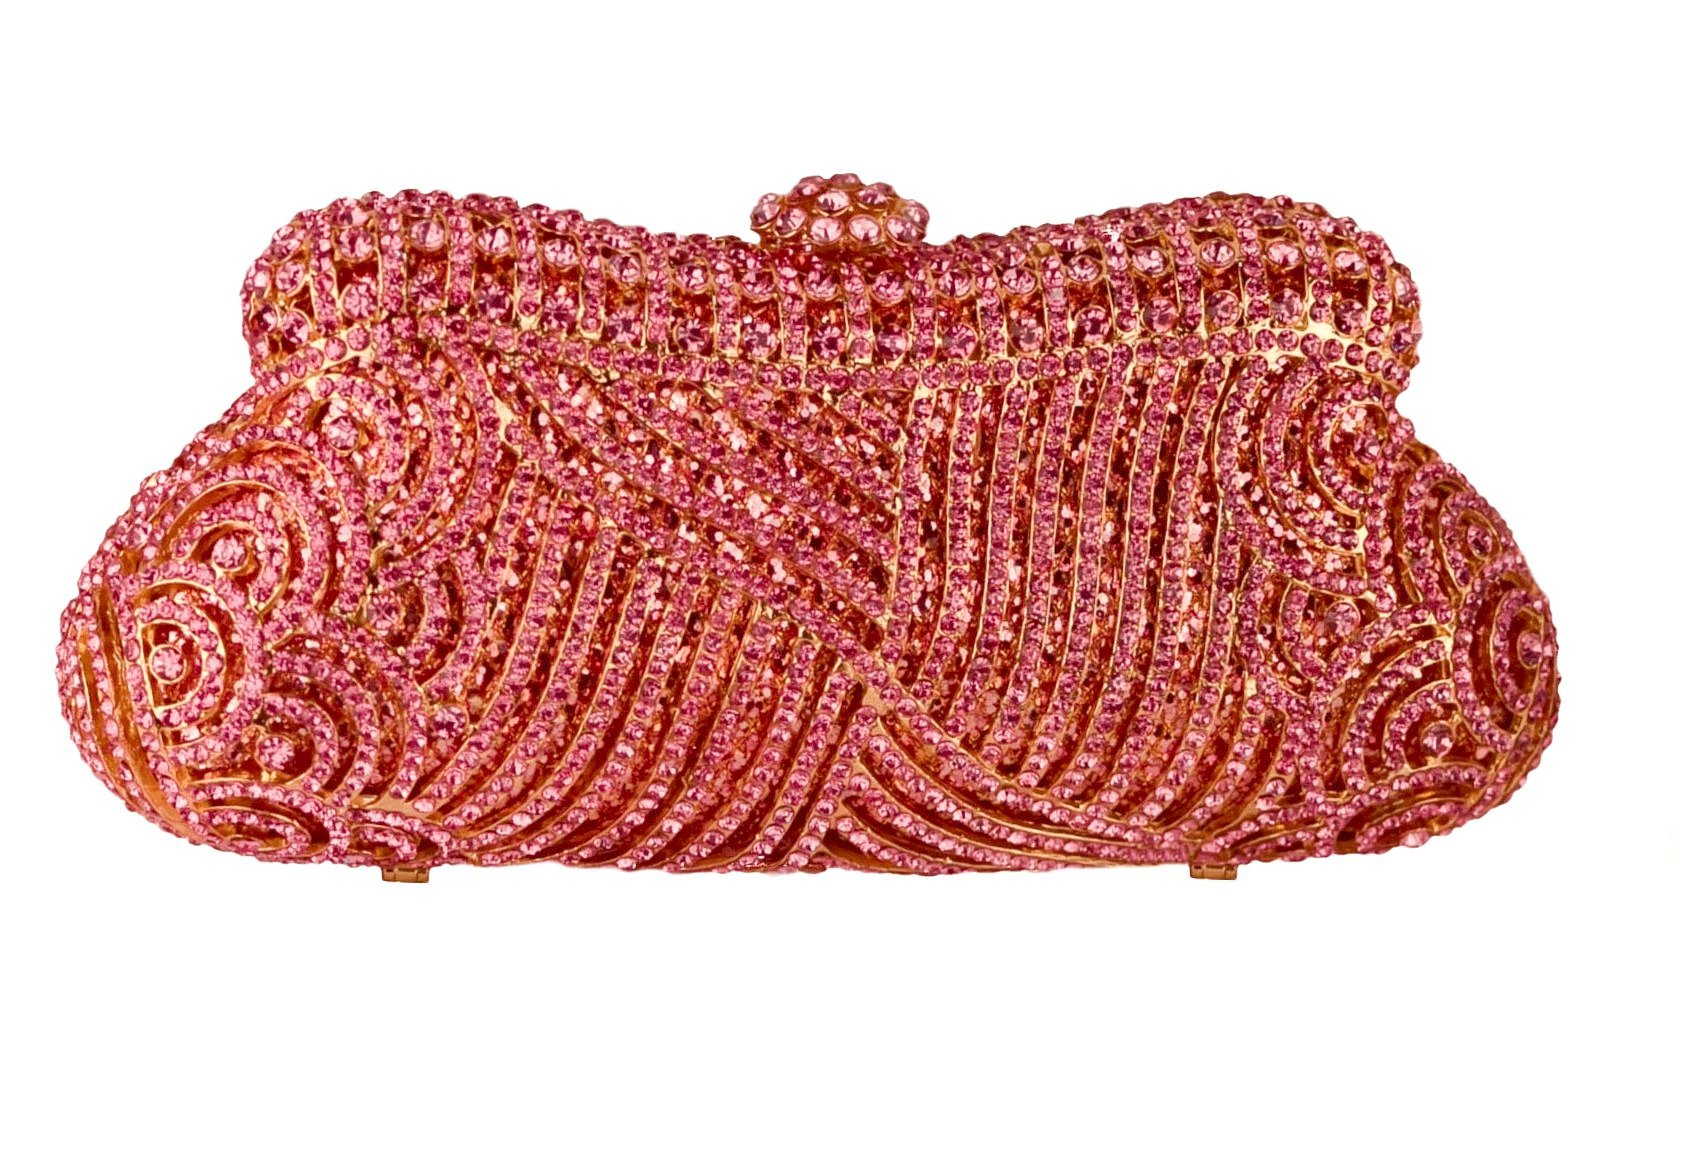 Crystal Bridal Clutch Formal Evening Bag Pink Gold & Silver Compact Mirror Wedding Party Gift Set